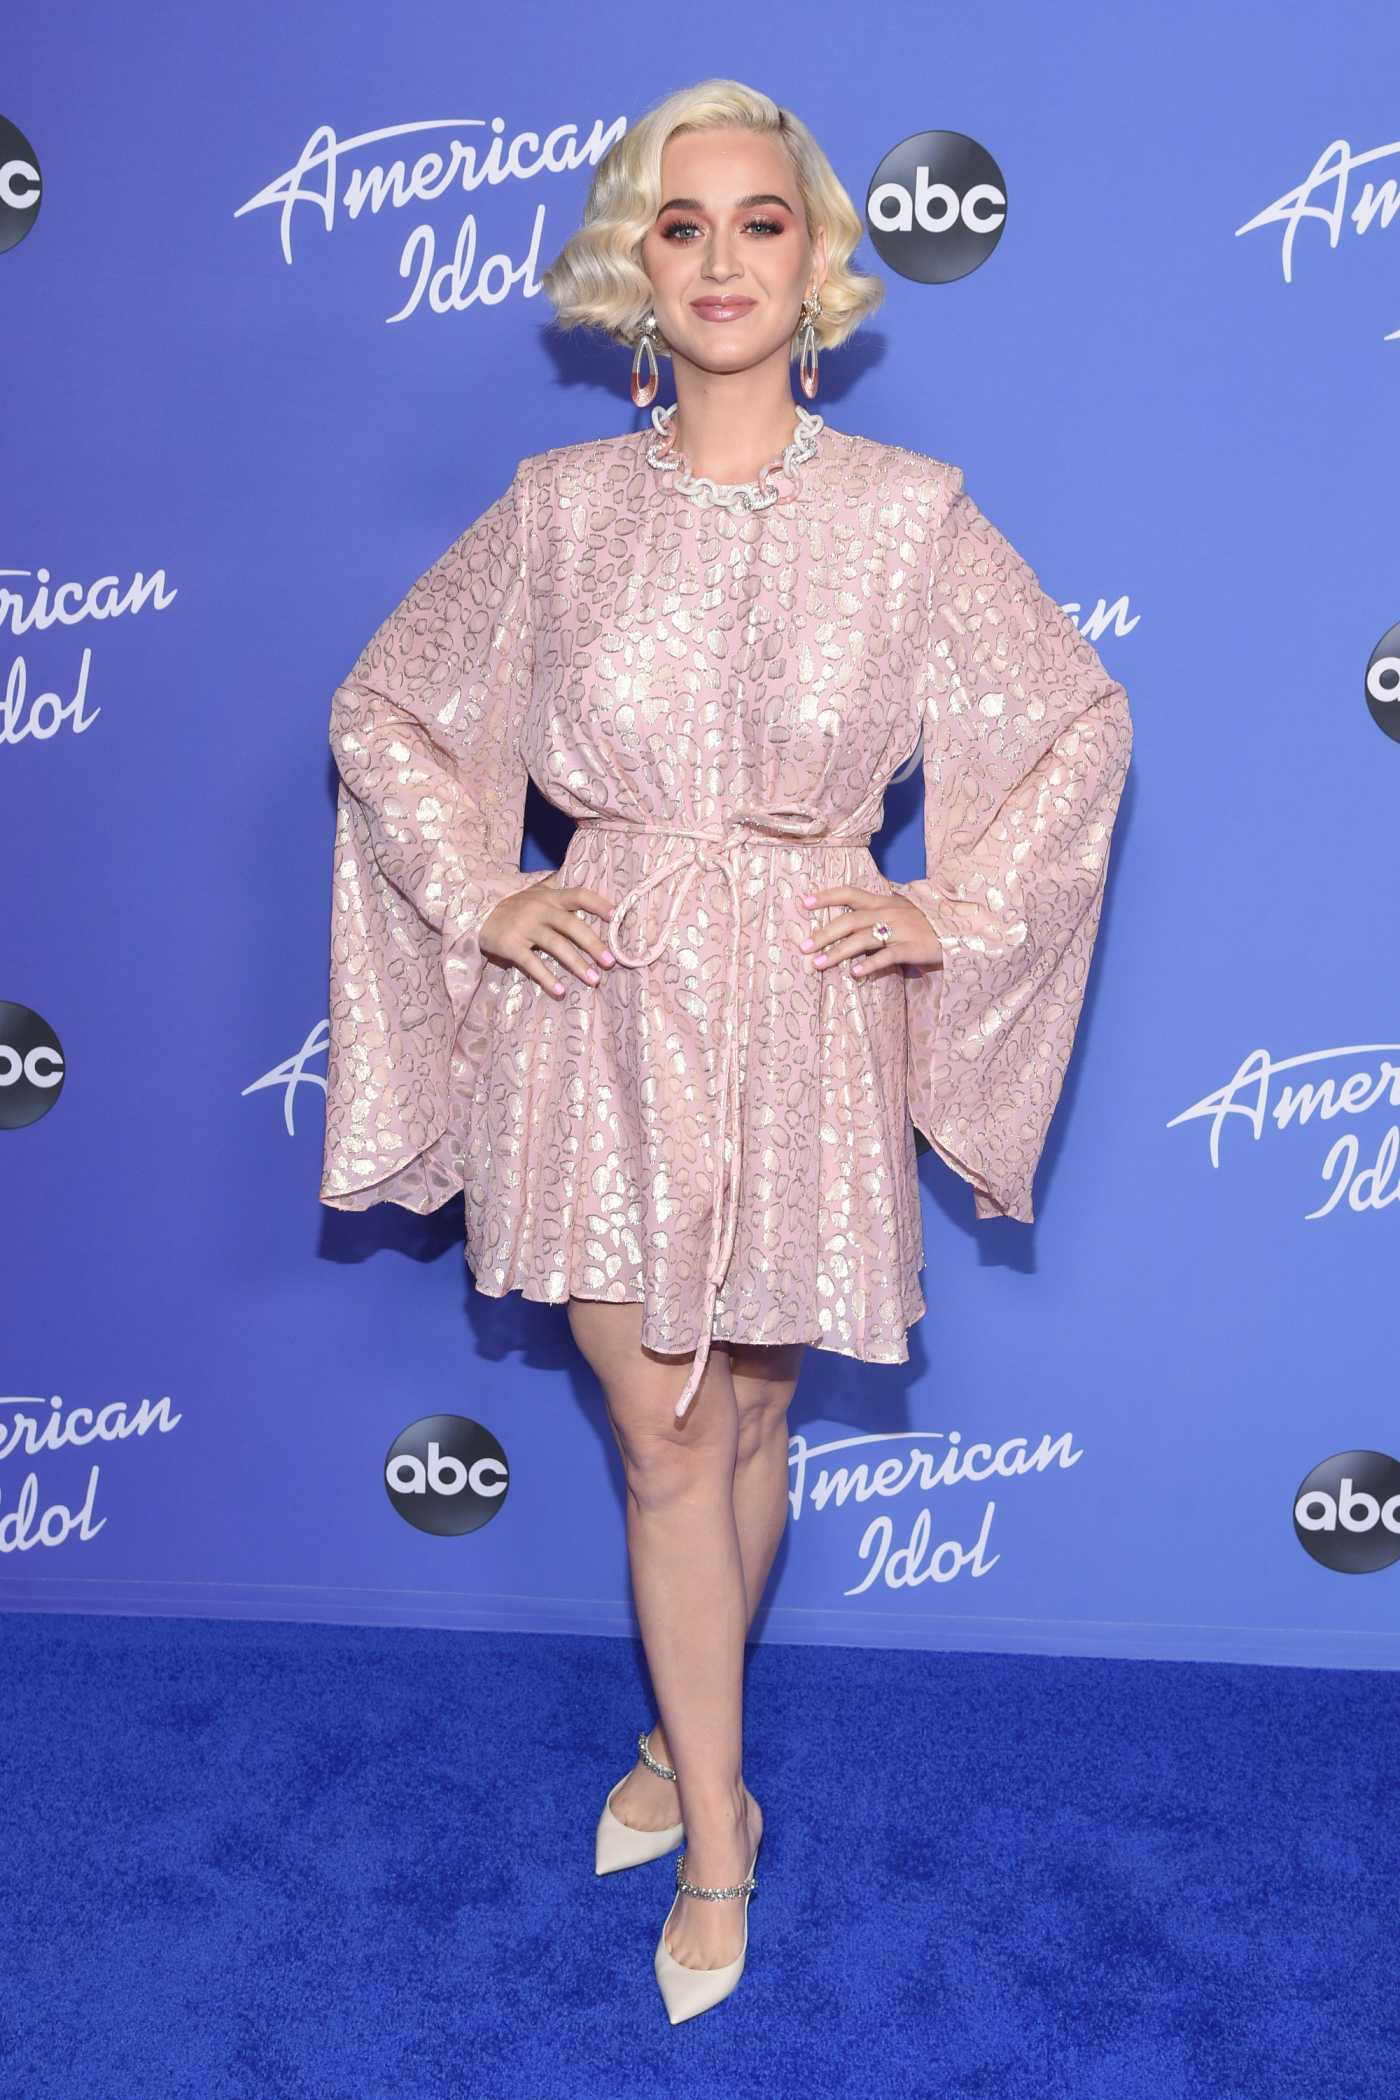 Katy Perry Attends Premiere Event for New American Idol Season in Hollywood 02/12/2020